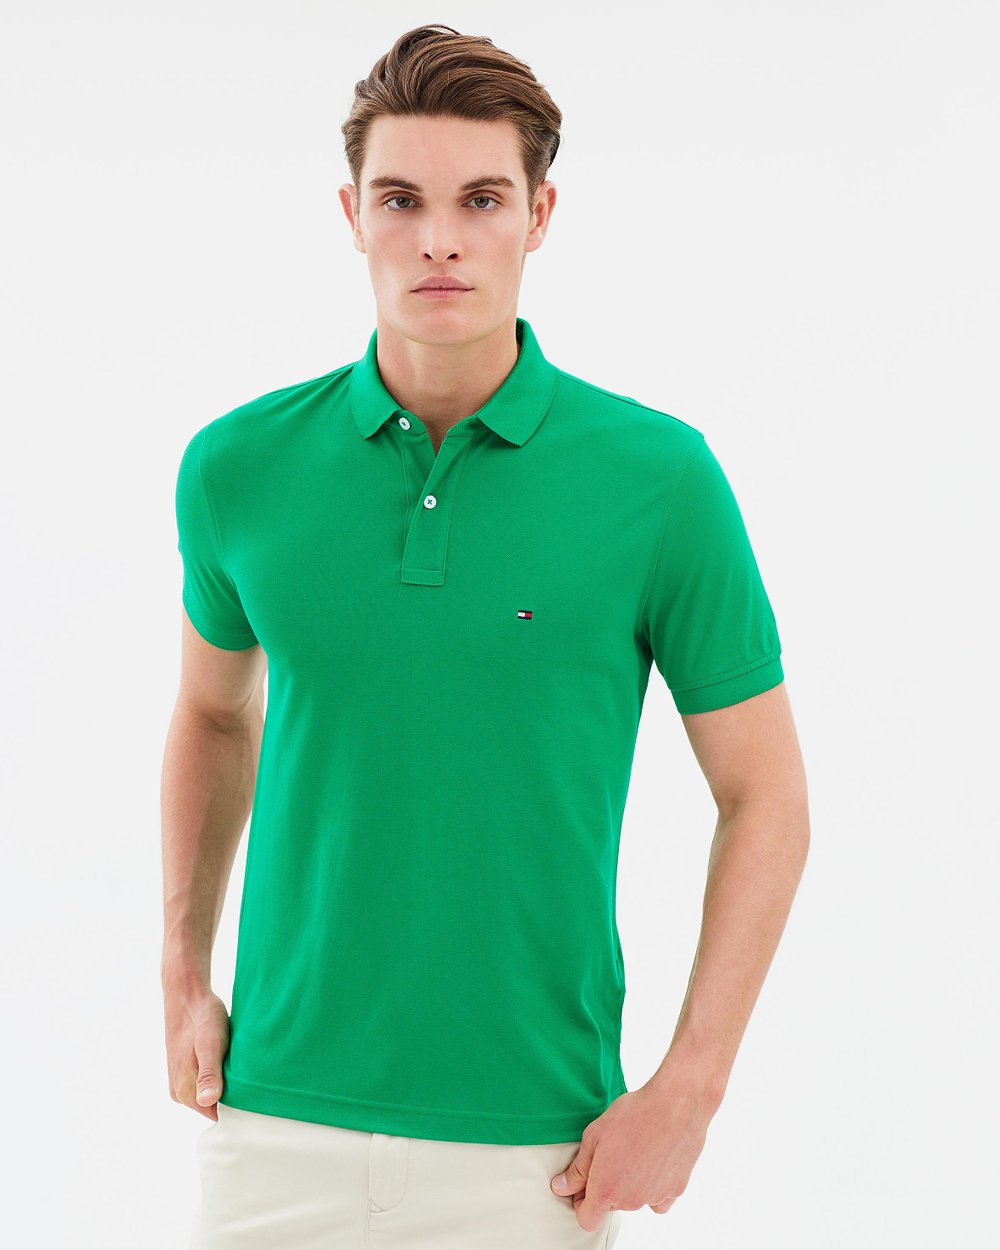 bcd3caaad4556d Modern Regular Polo by Tommy Hilfiger Online